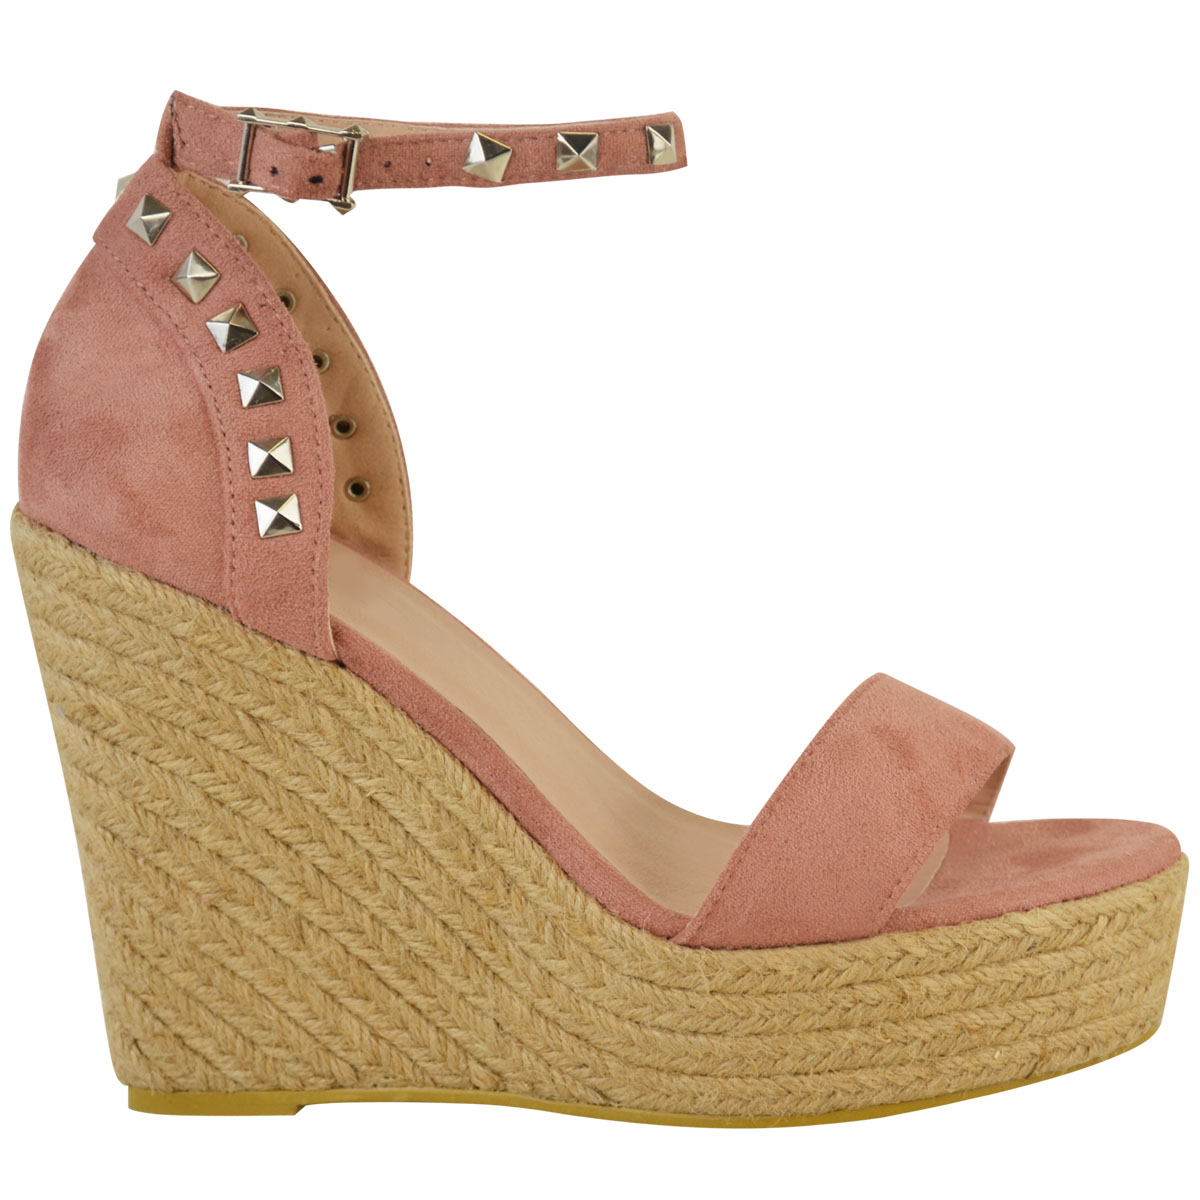 New-Womens-Stud-Espadrille-Wedge-Summer-Sandal-Ladies-Rose-Gold-Party-Shoes-Size thumbnail 15